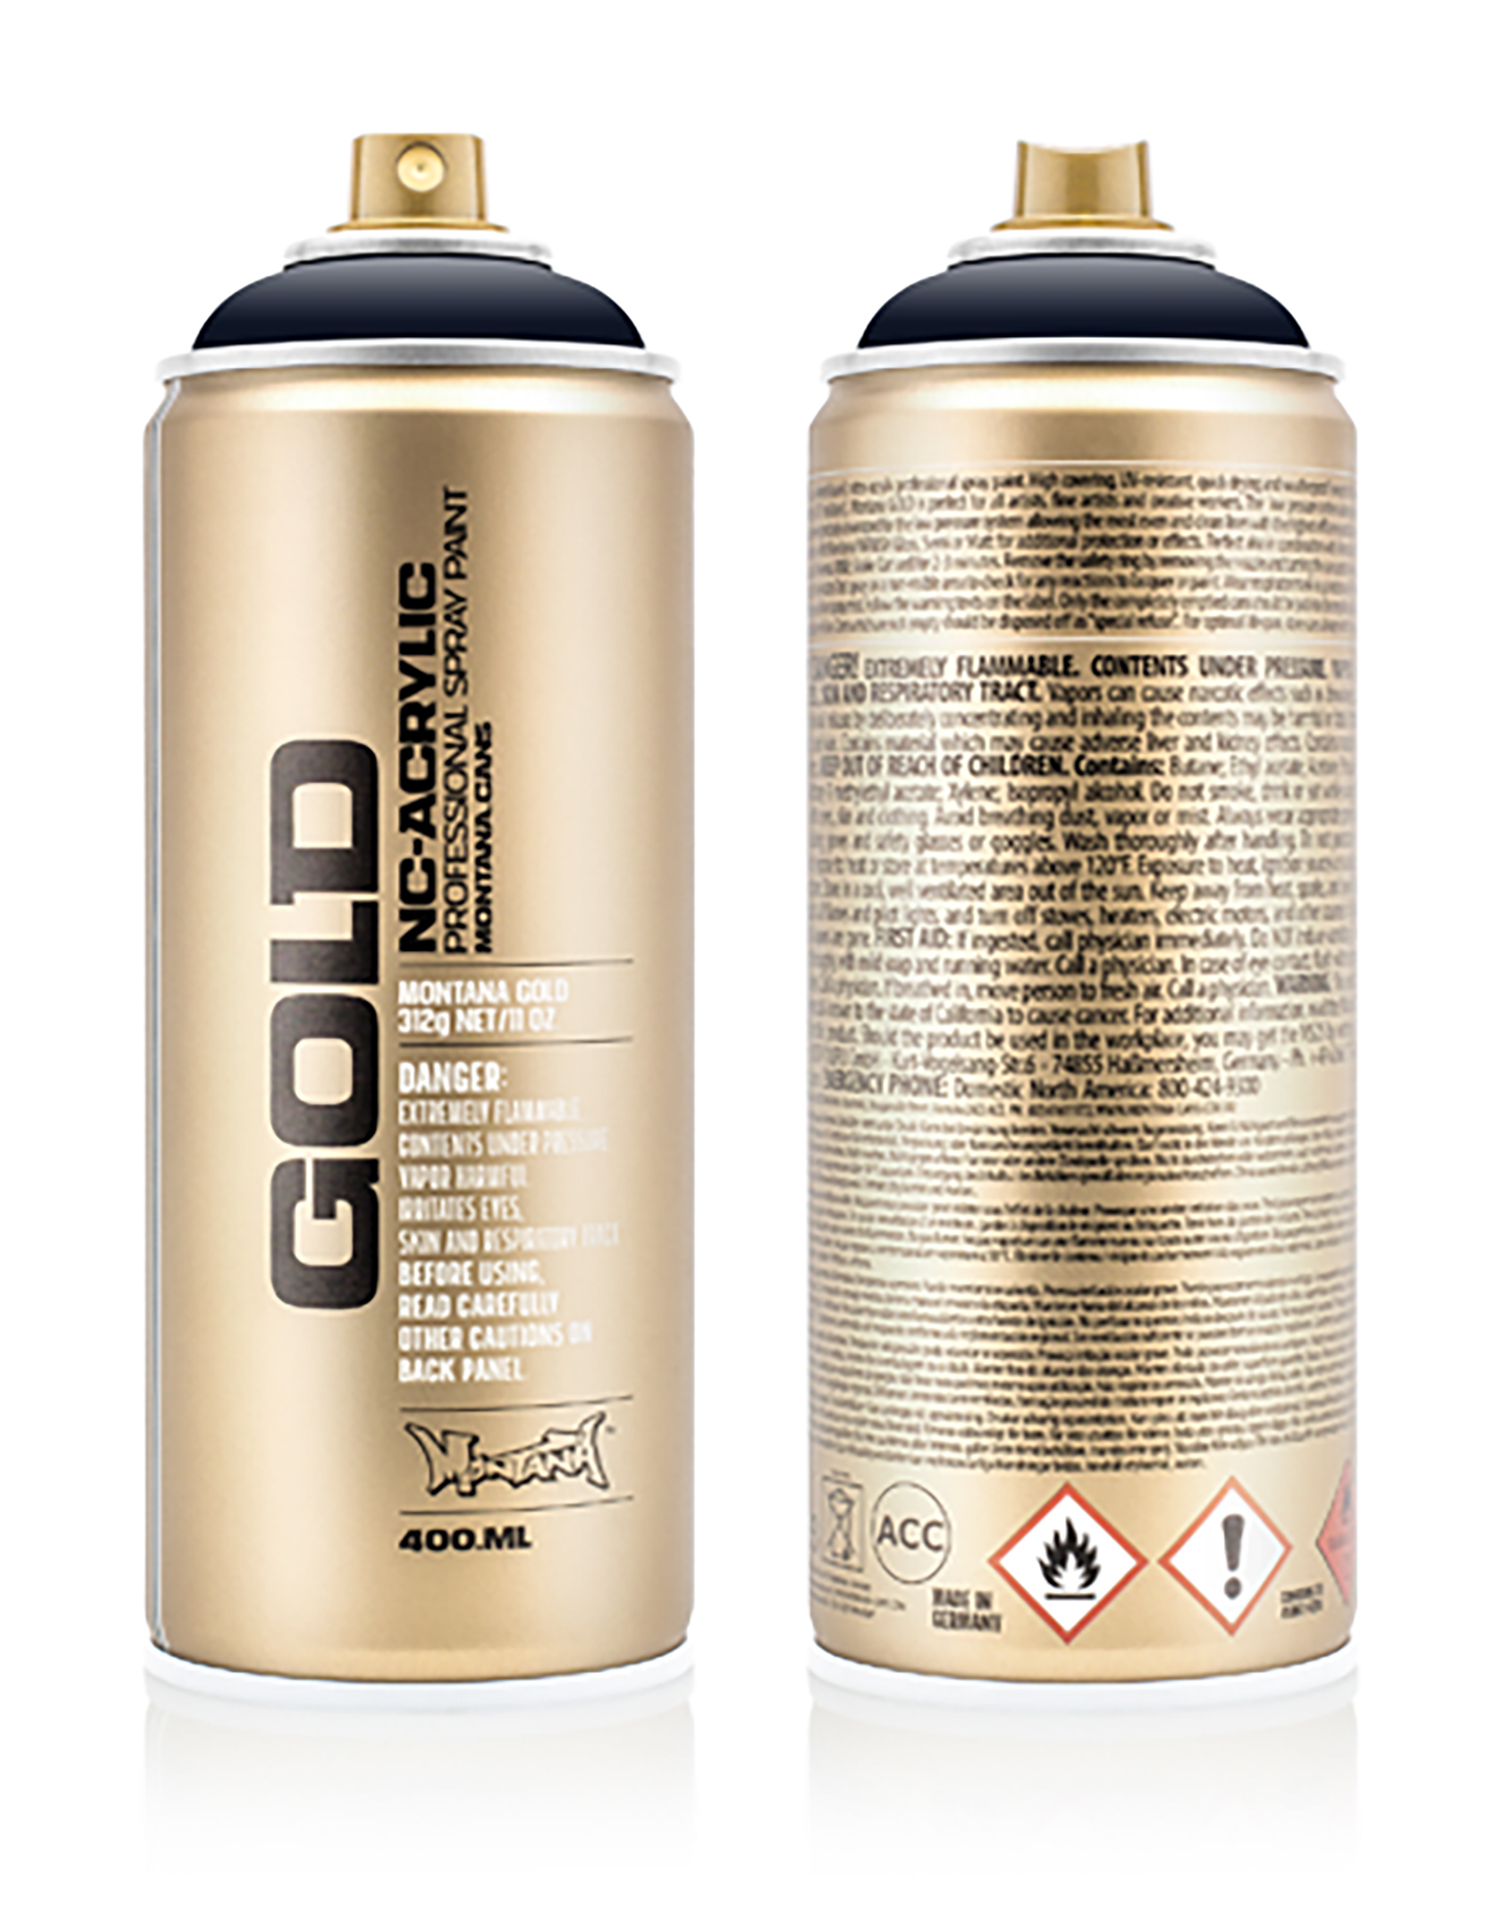 MONTANA-GOLD-SPRAY-400ML-G-4190